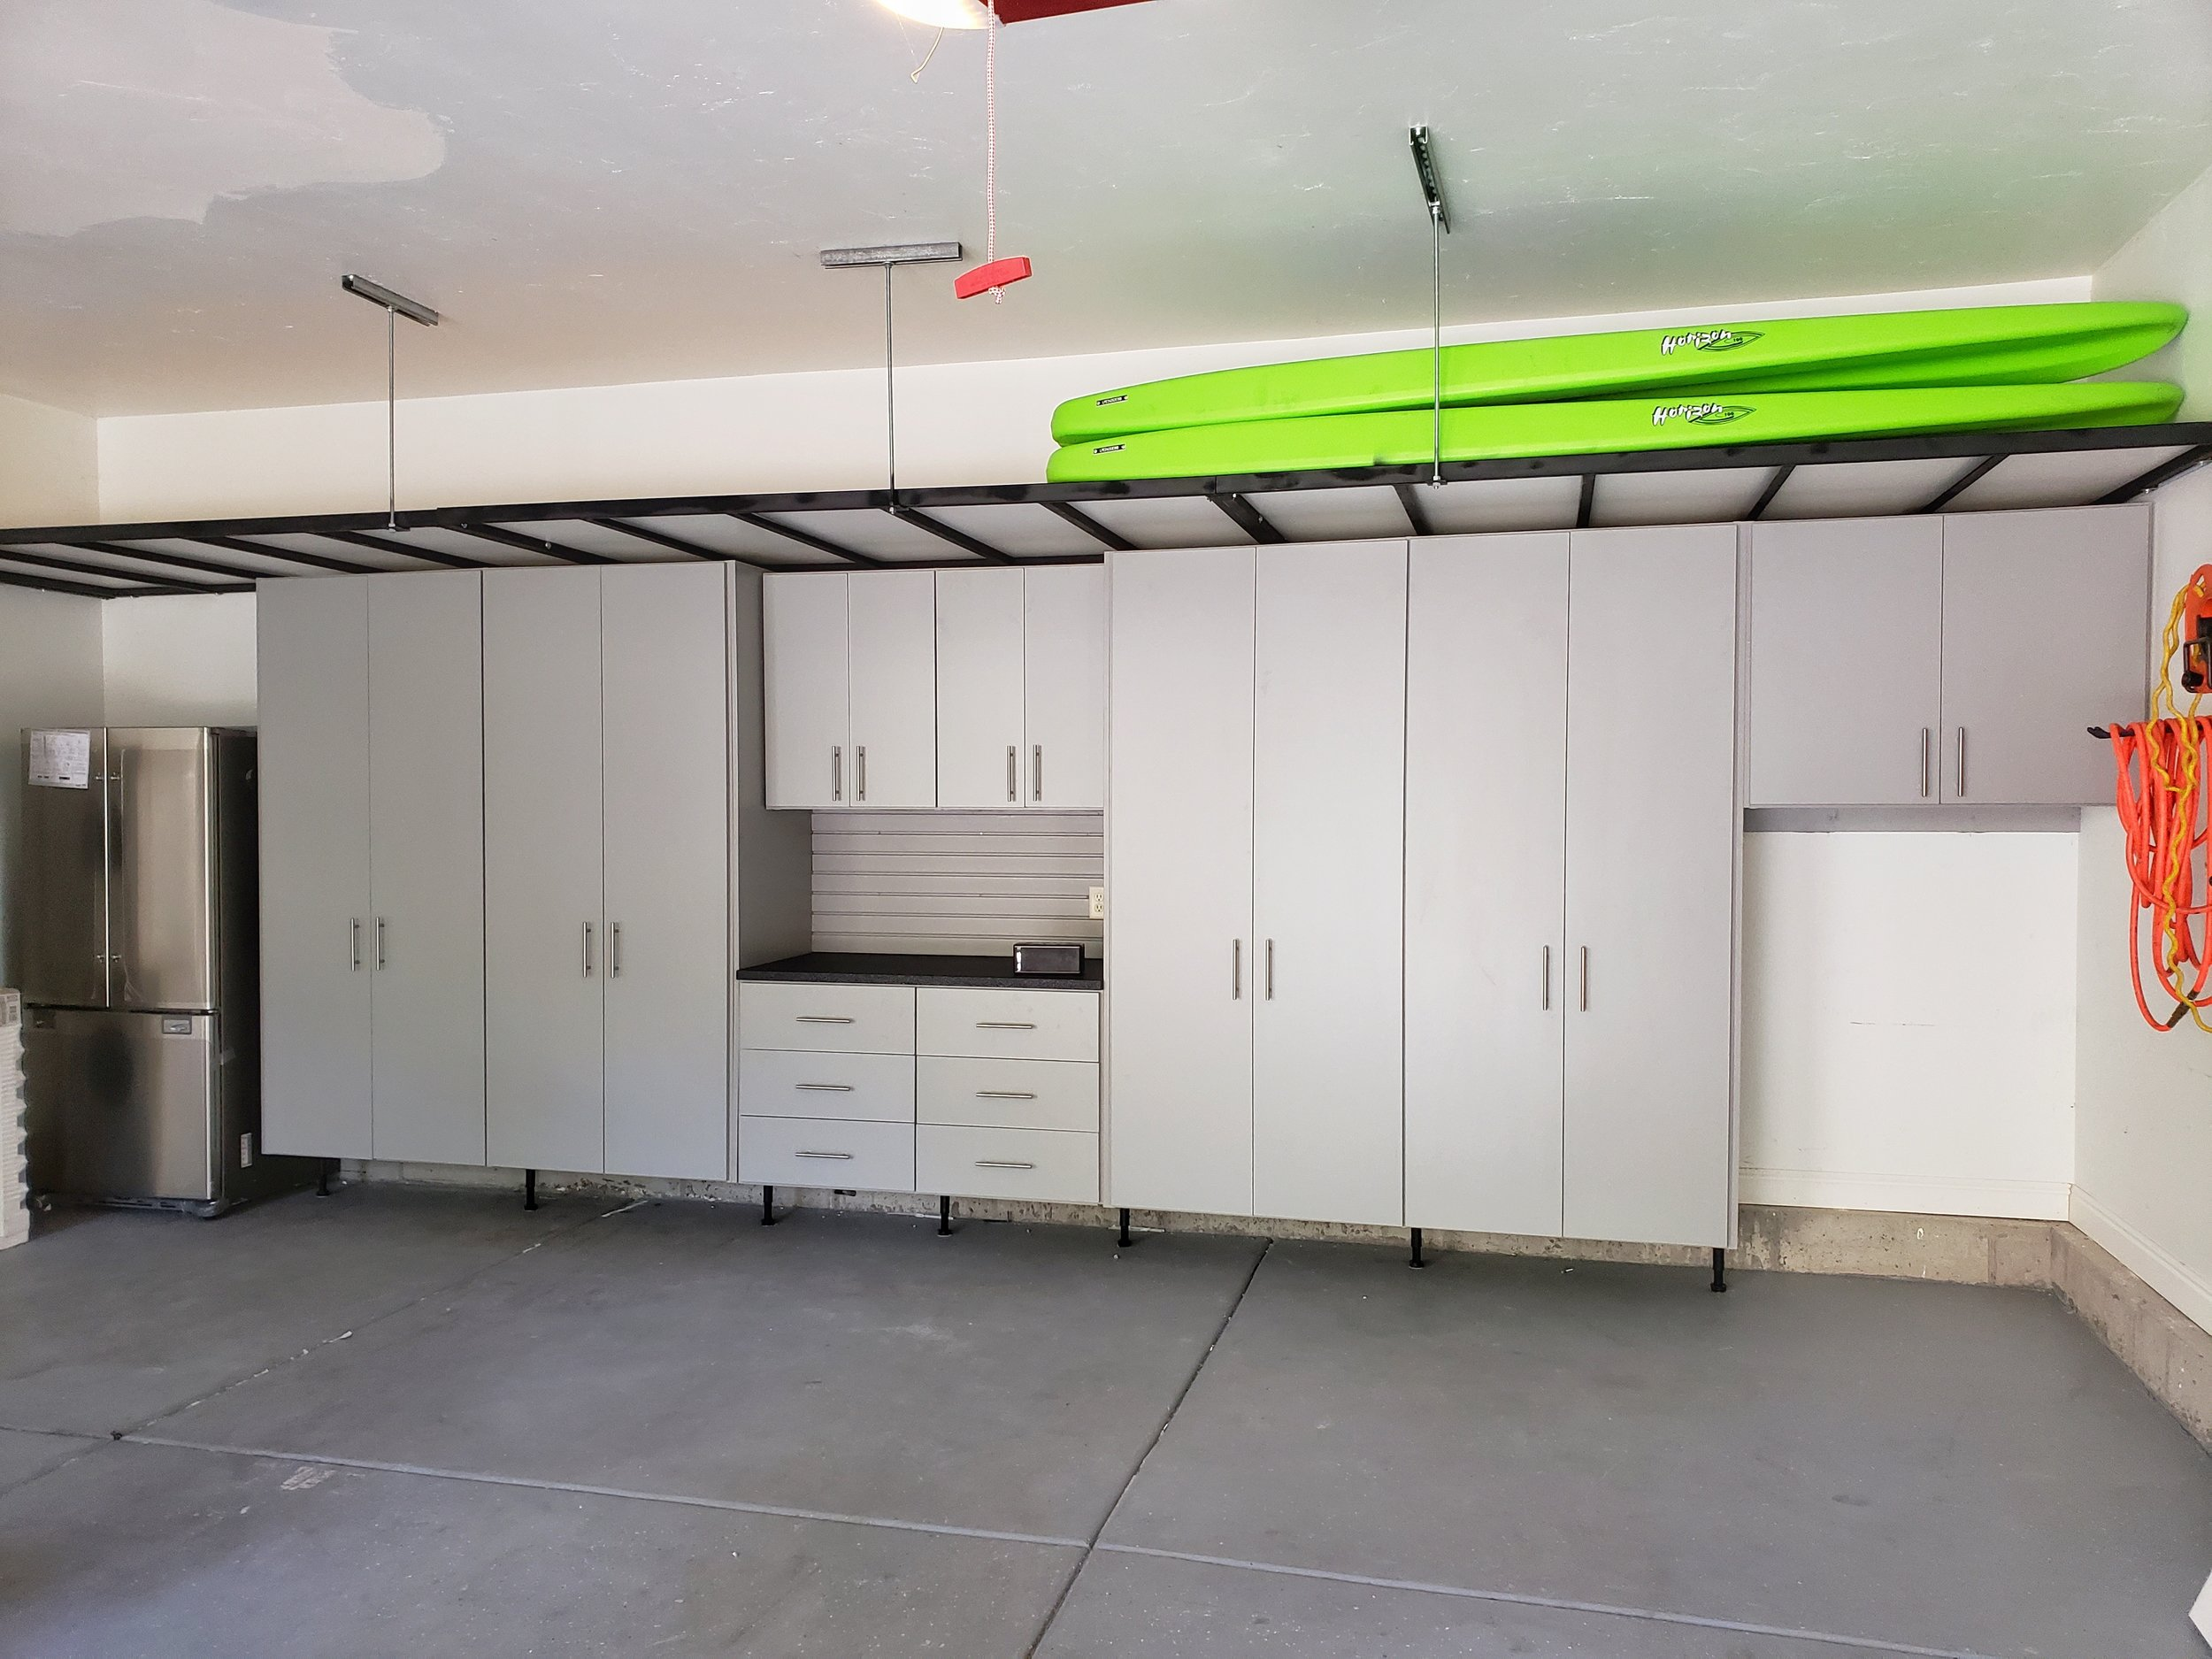 cabinets with overhead